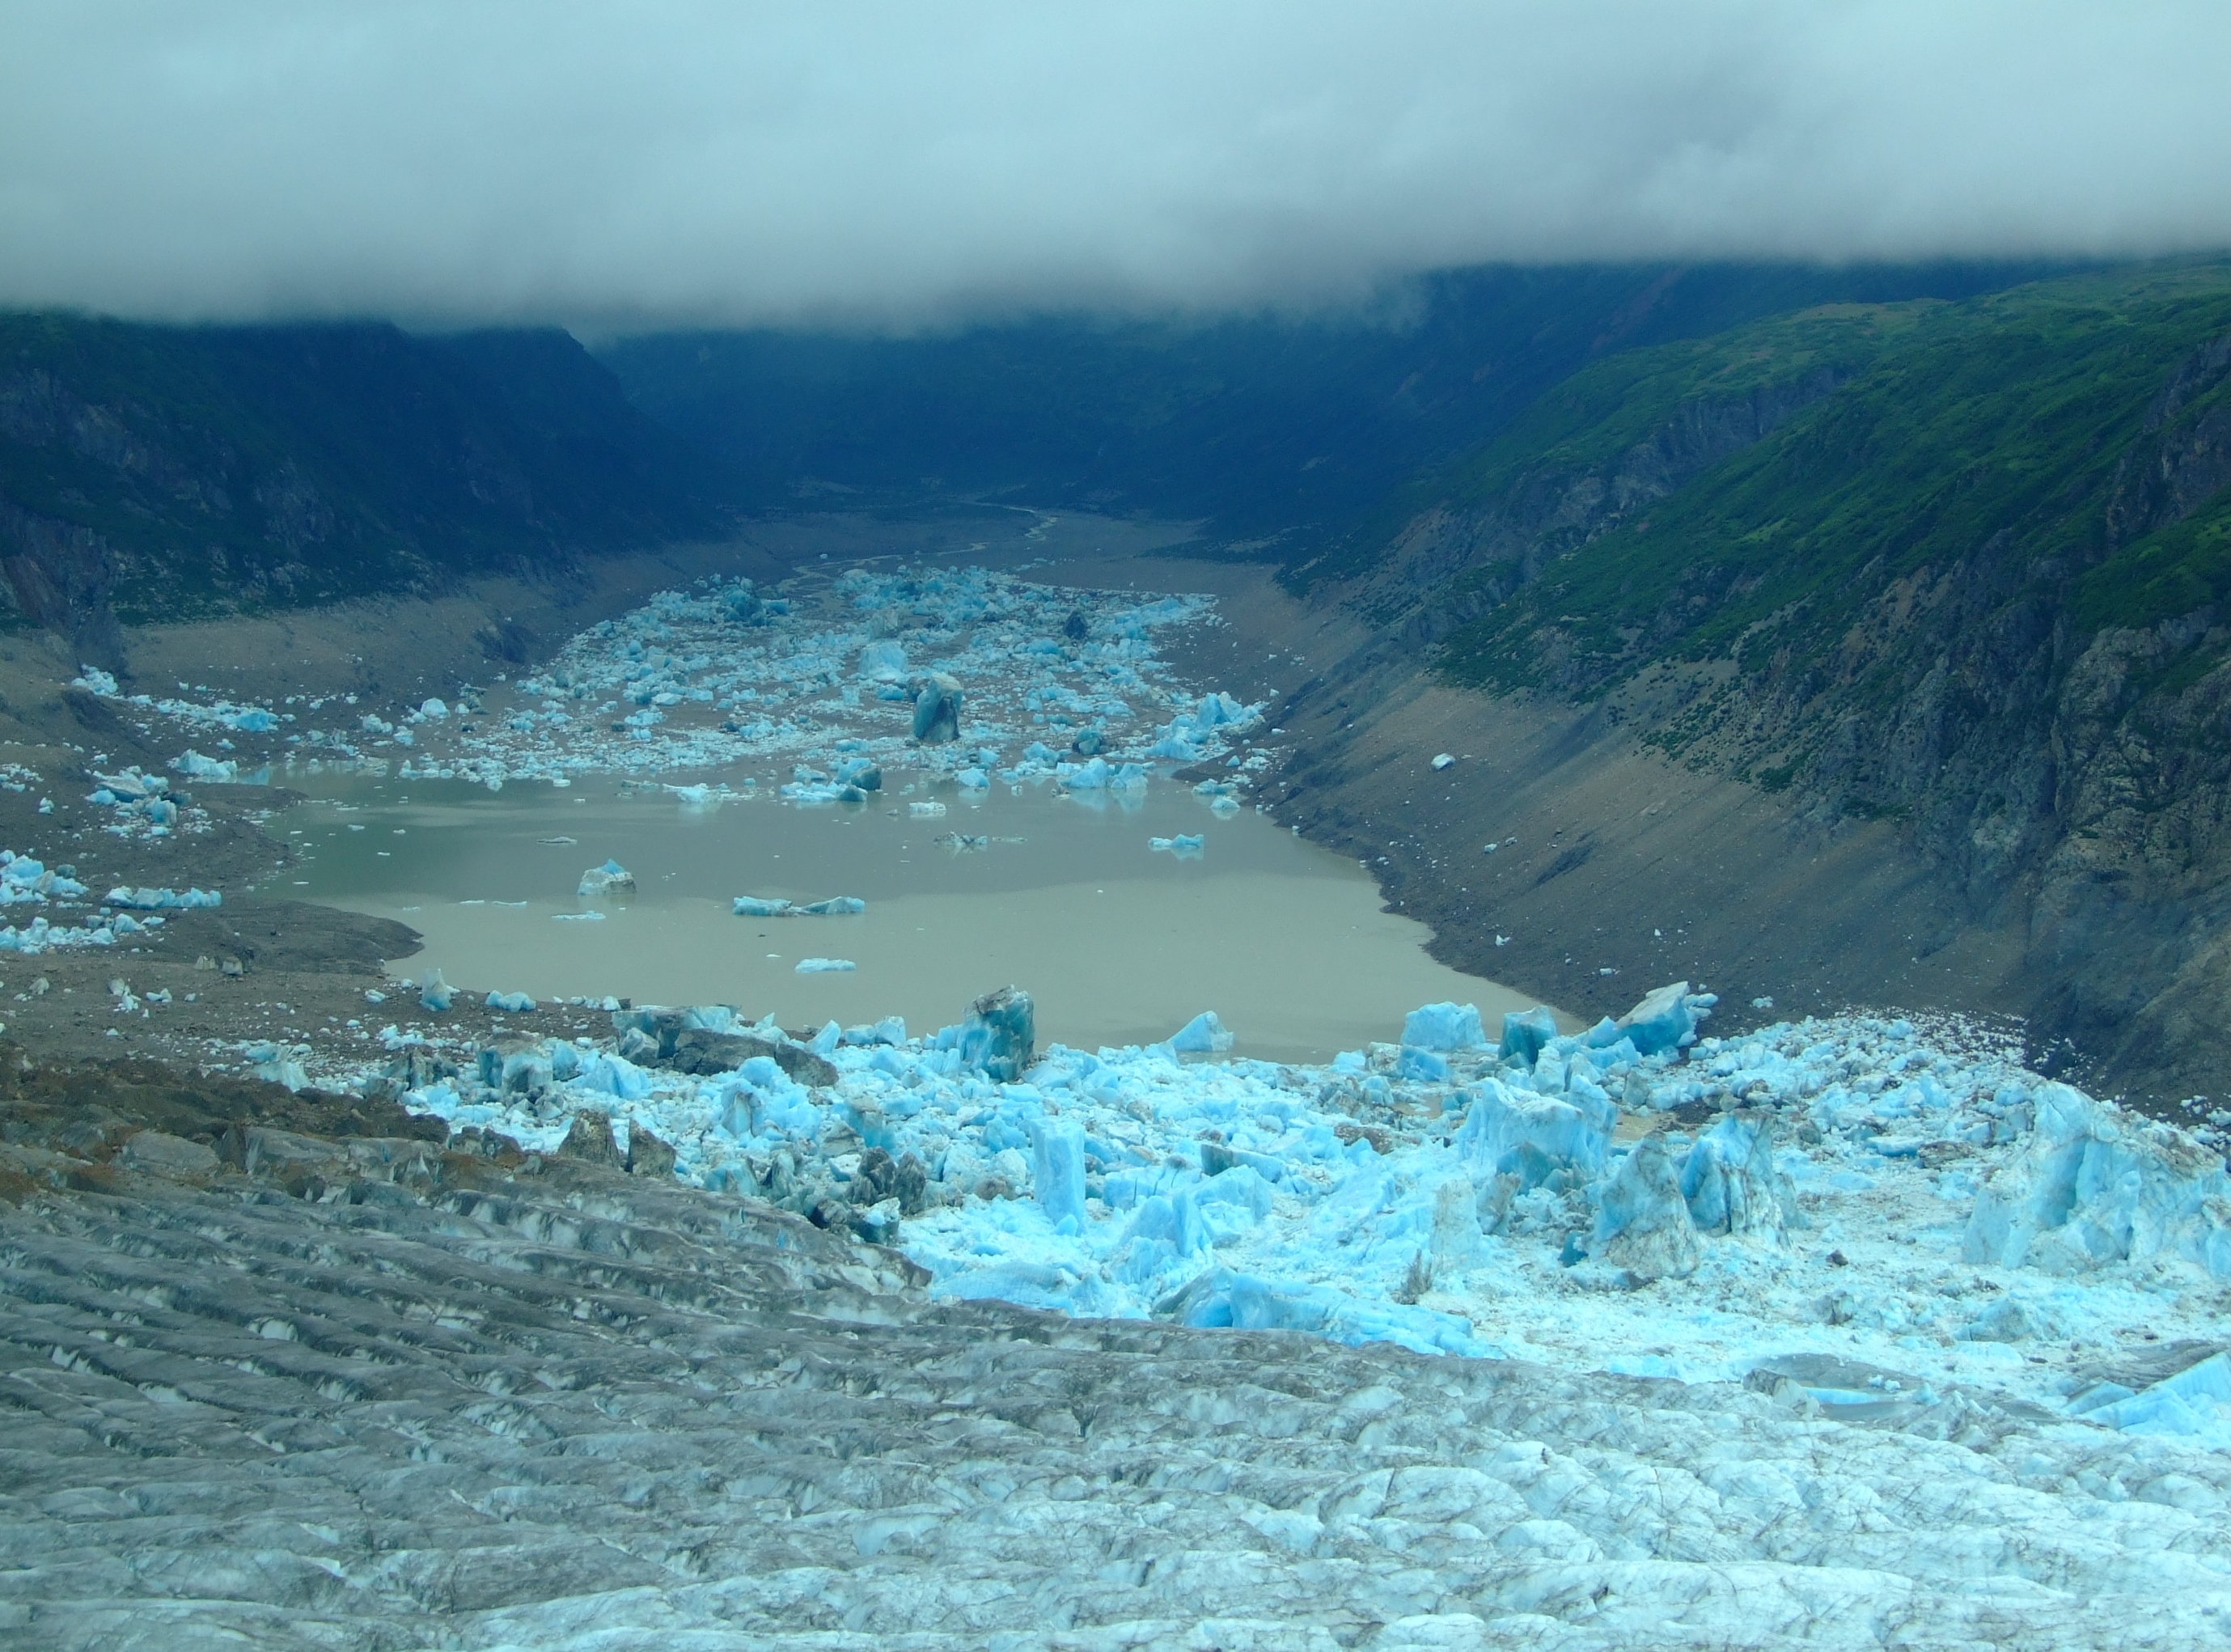 Under the impinging cloud layer, Strandline Lake was no longer impounded by the Triumvirate Glacier. Note the stranded glacial ice high on the sides of the lake's edges. This view of its remaining waters, and the previous images of its continued outflow, show that it wasn't yet finished draining.